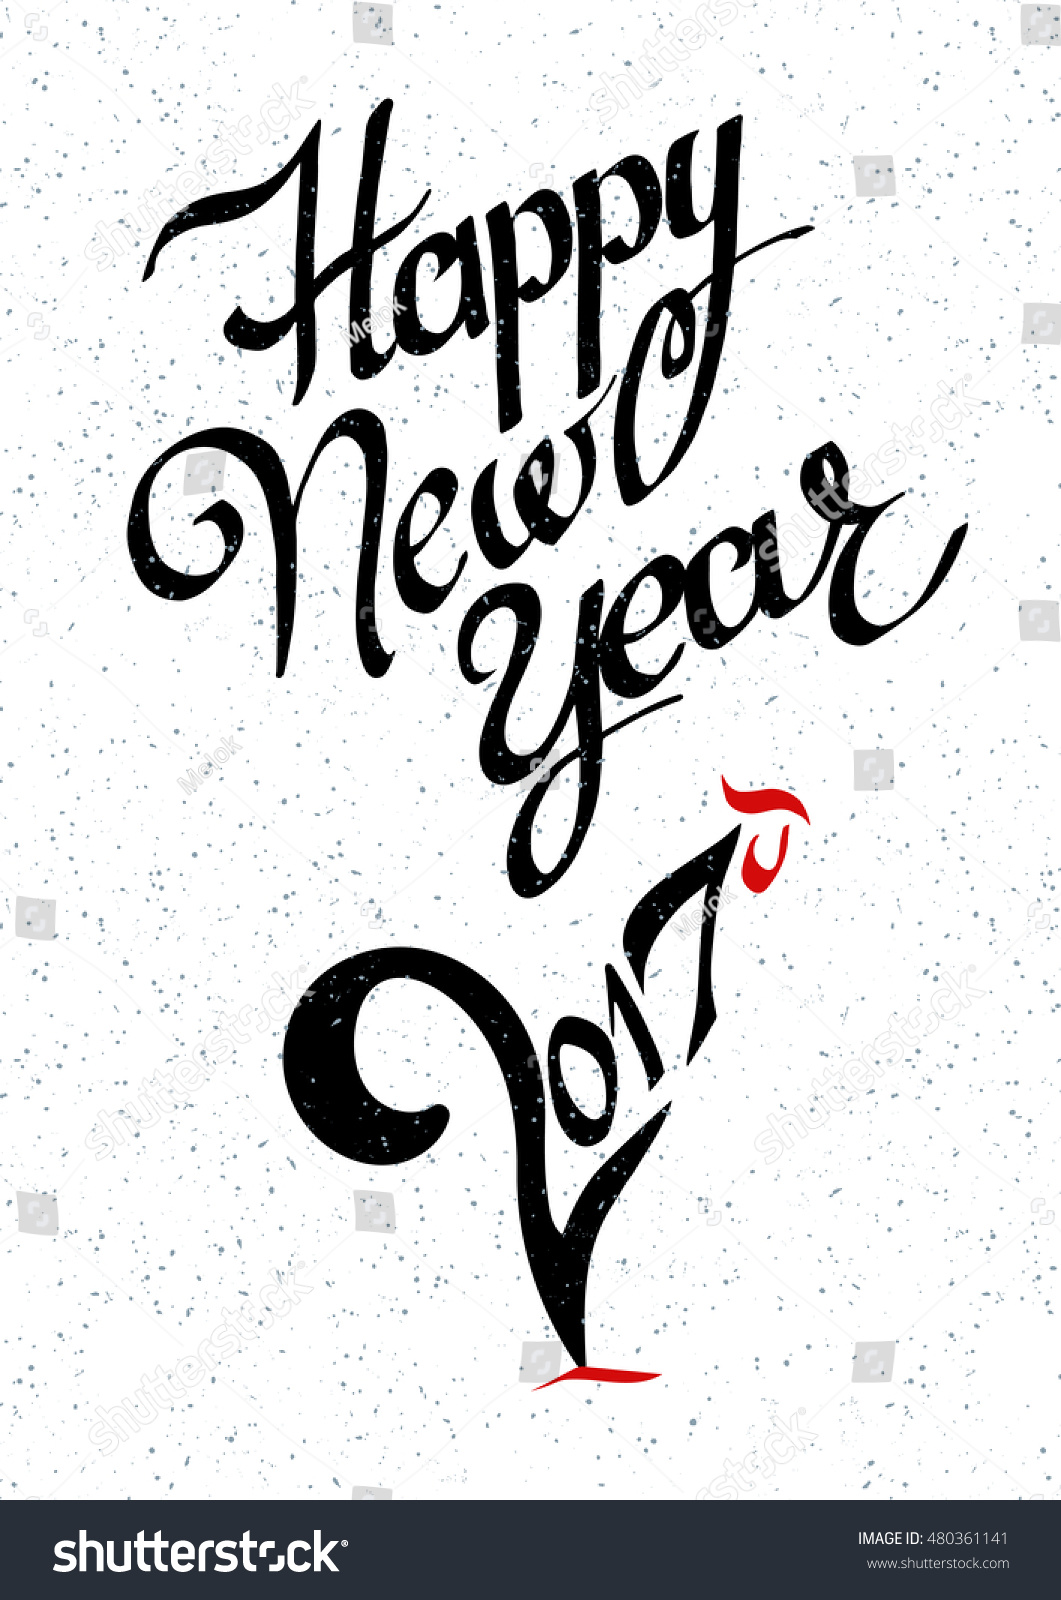 happy new year 2017 creative greeting card design concept lettering handmade vector calligraphy